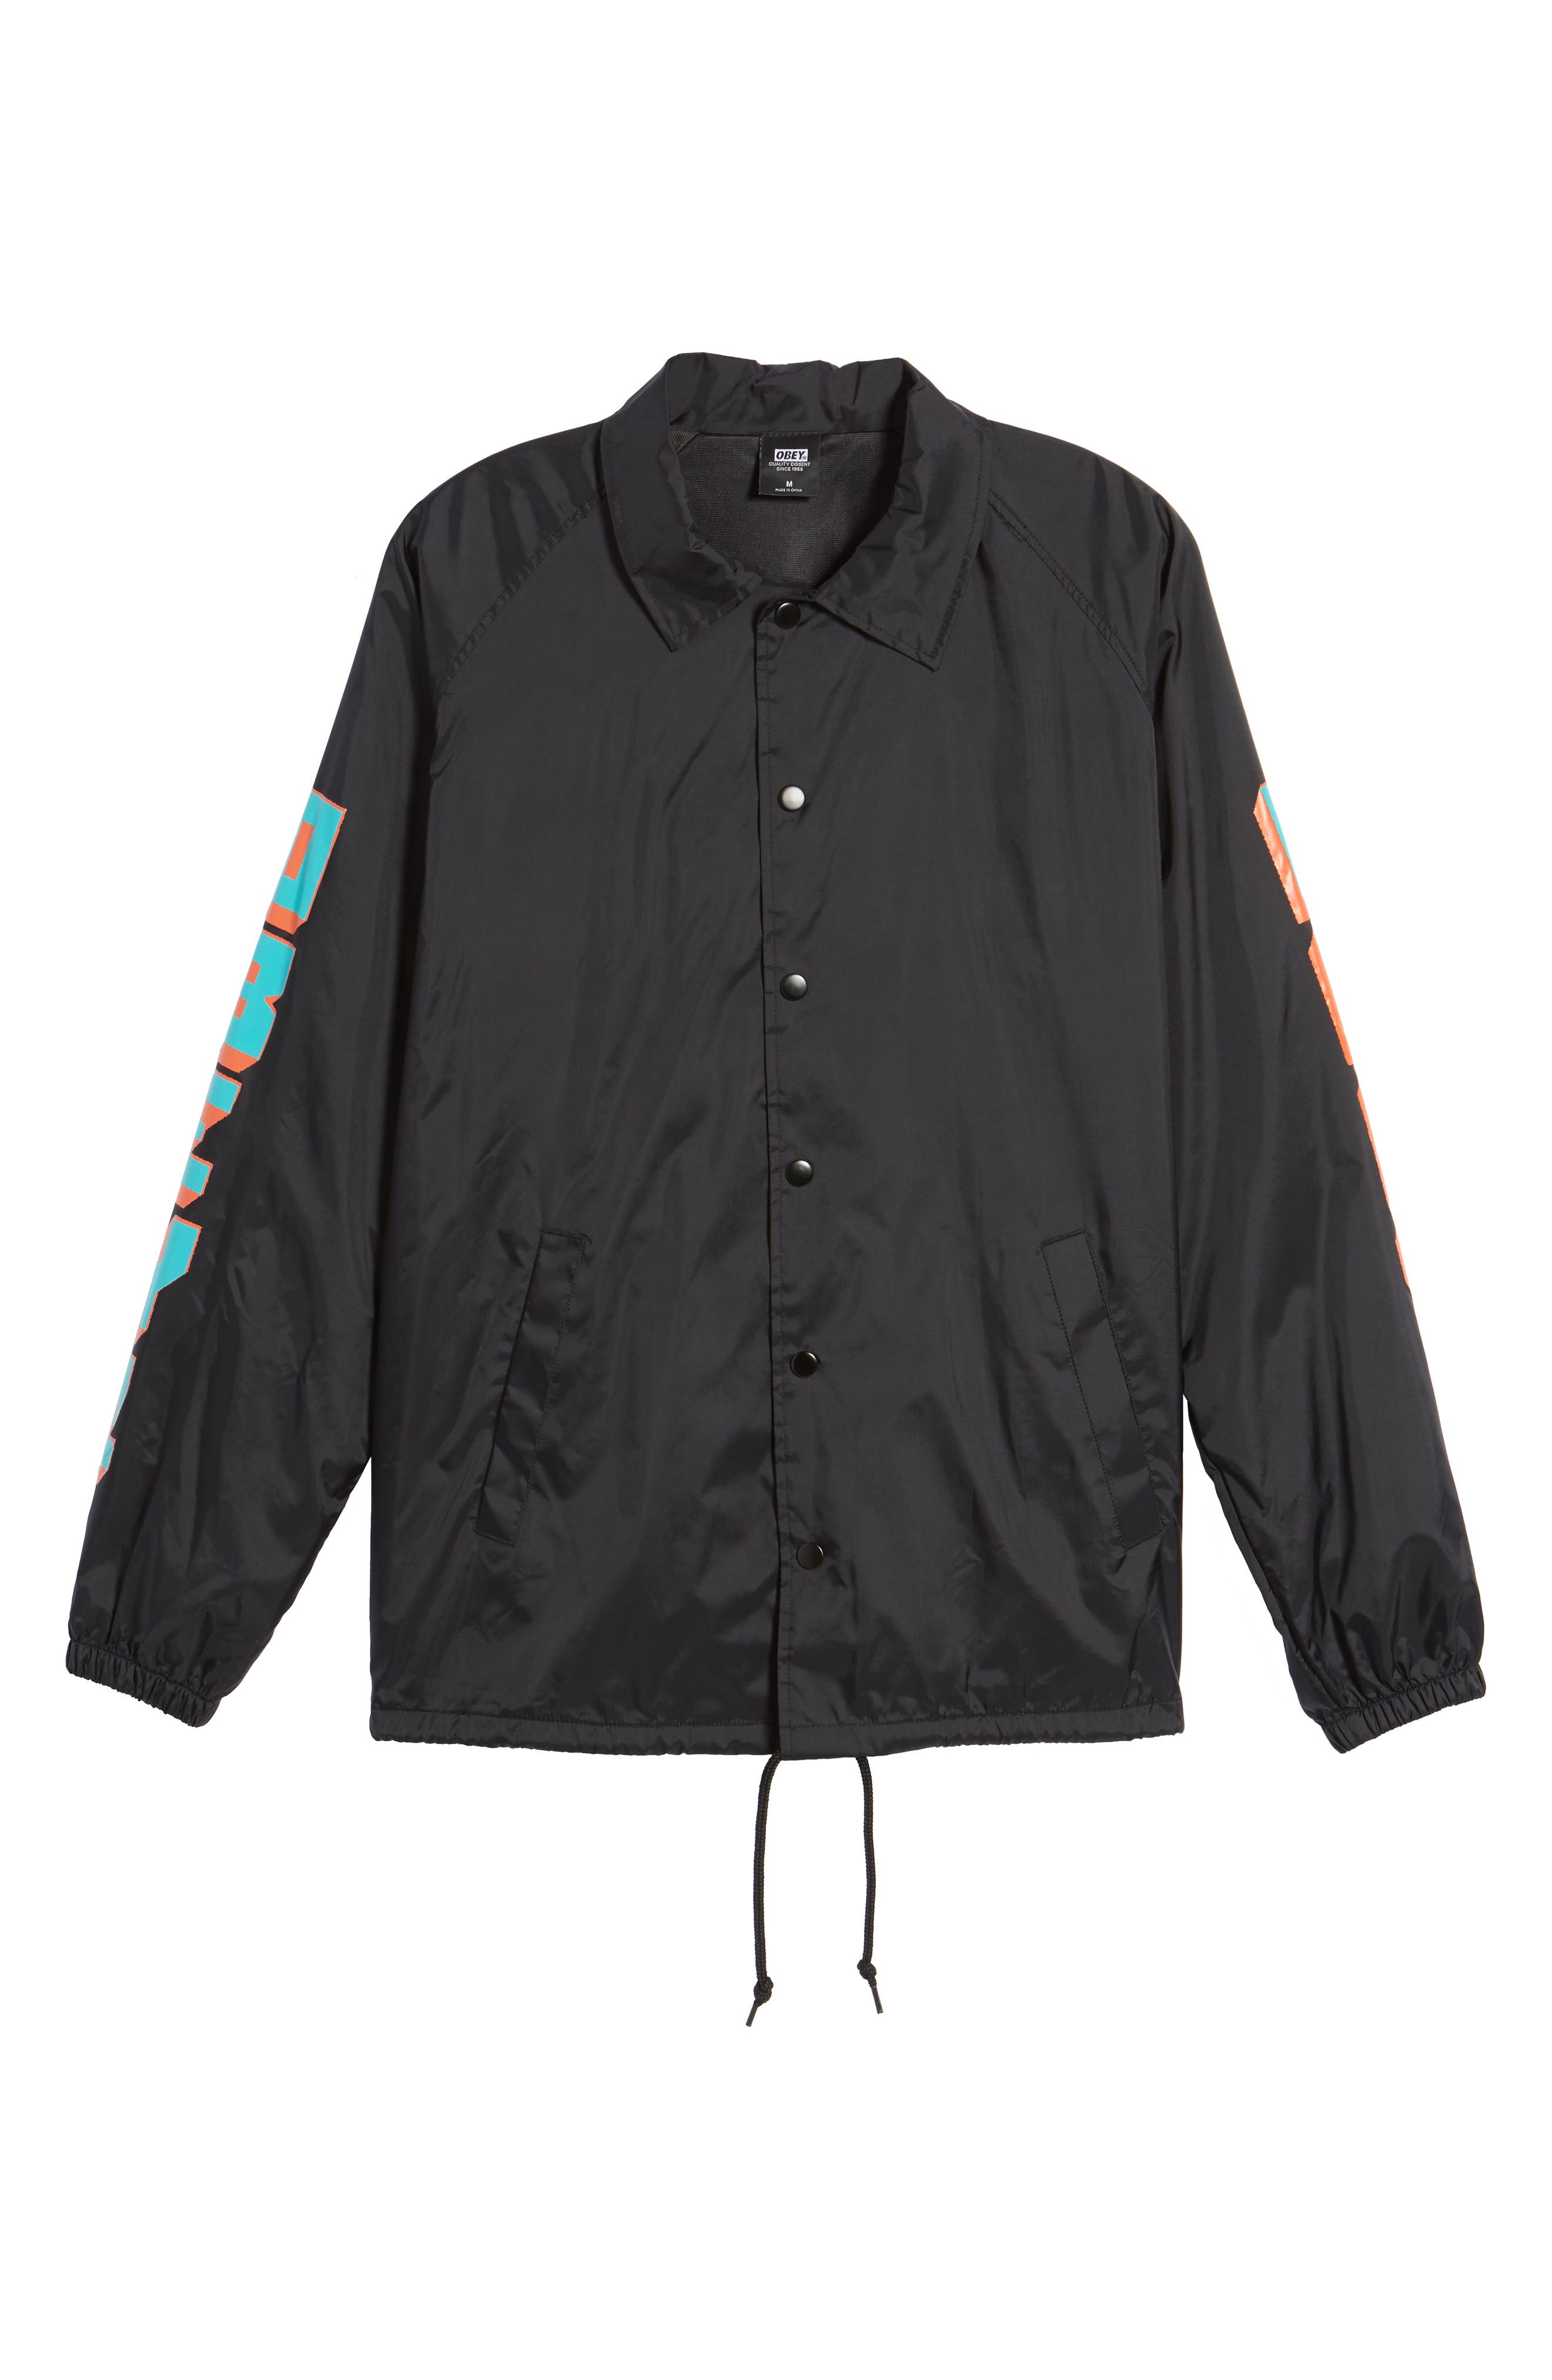 New World 2 Coach's Jacket,                             Alternate thumbnail 5, color,                             001